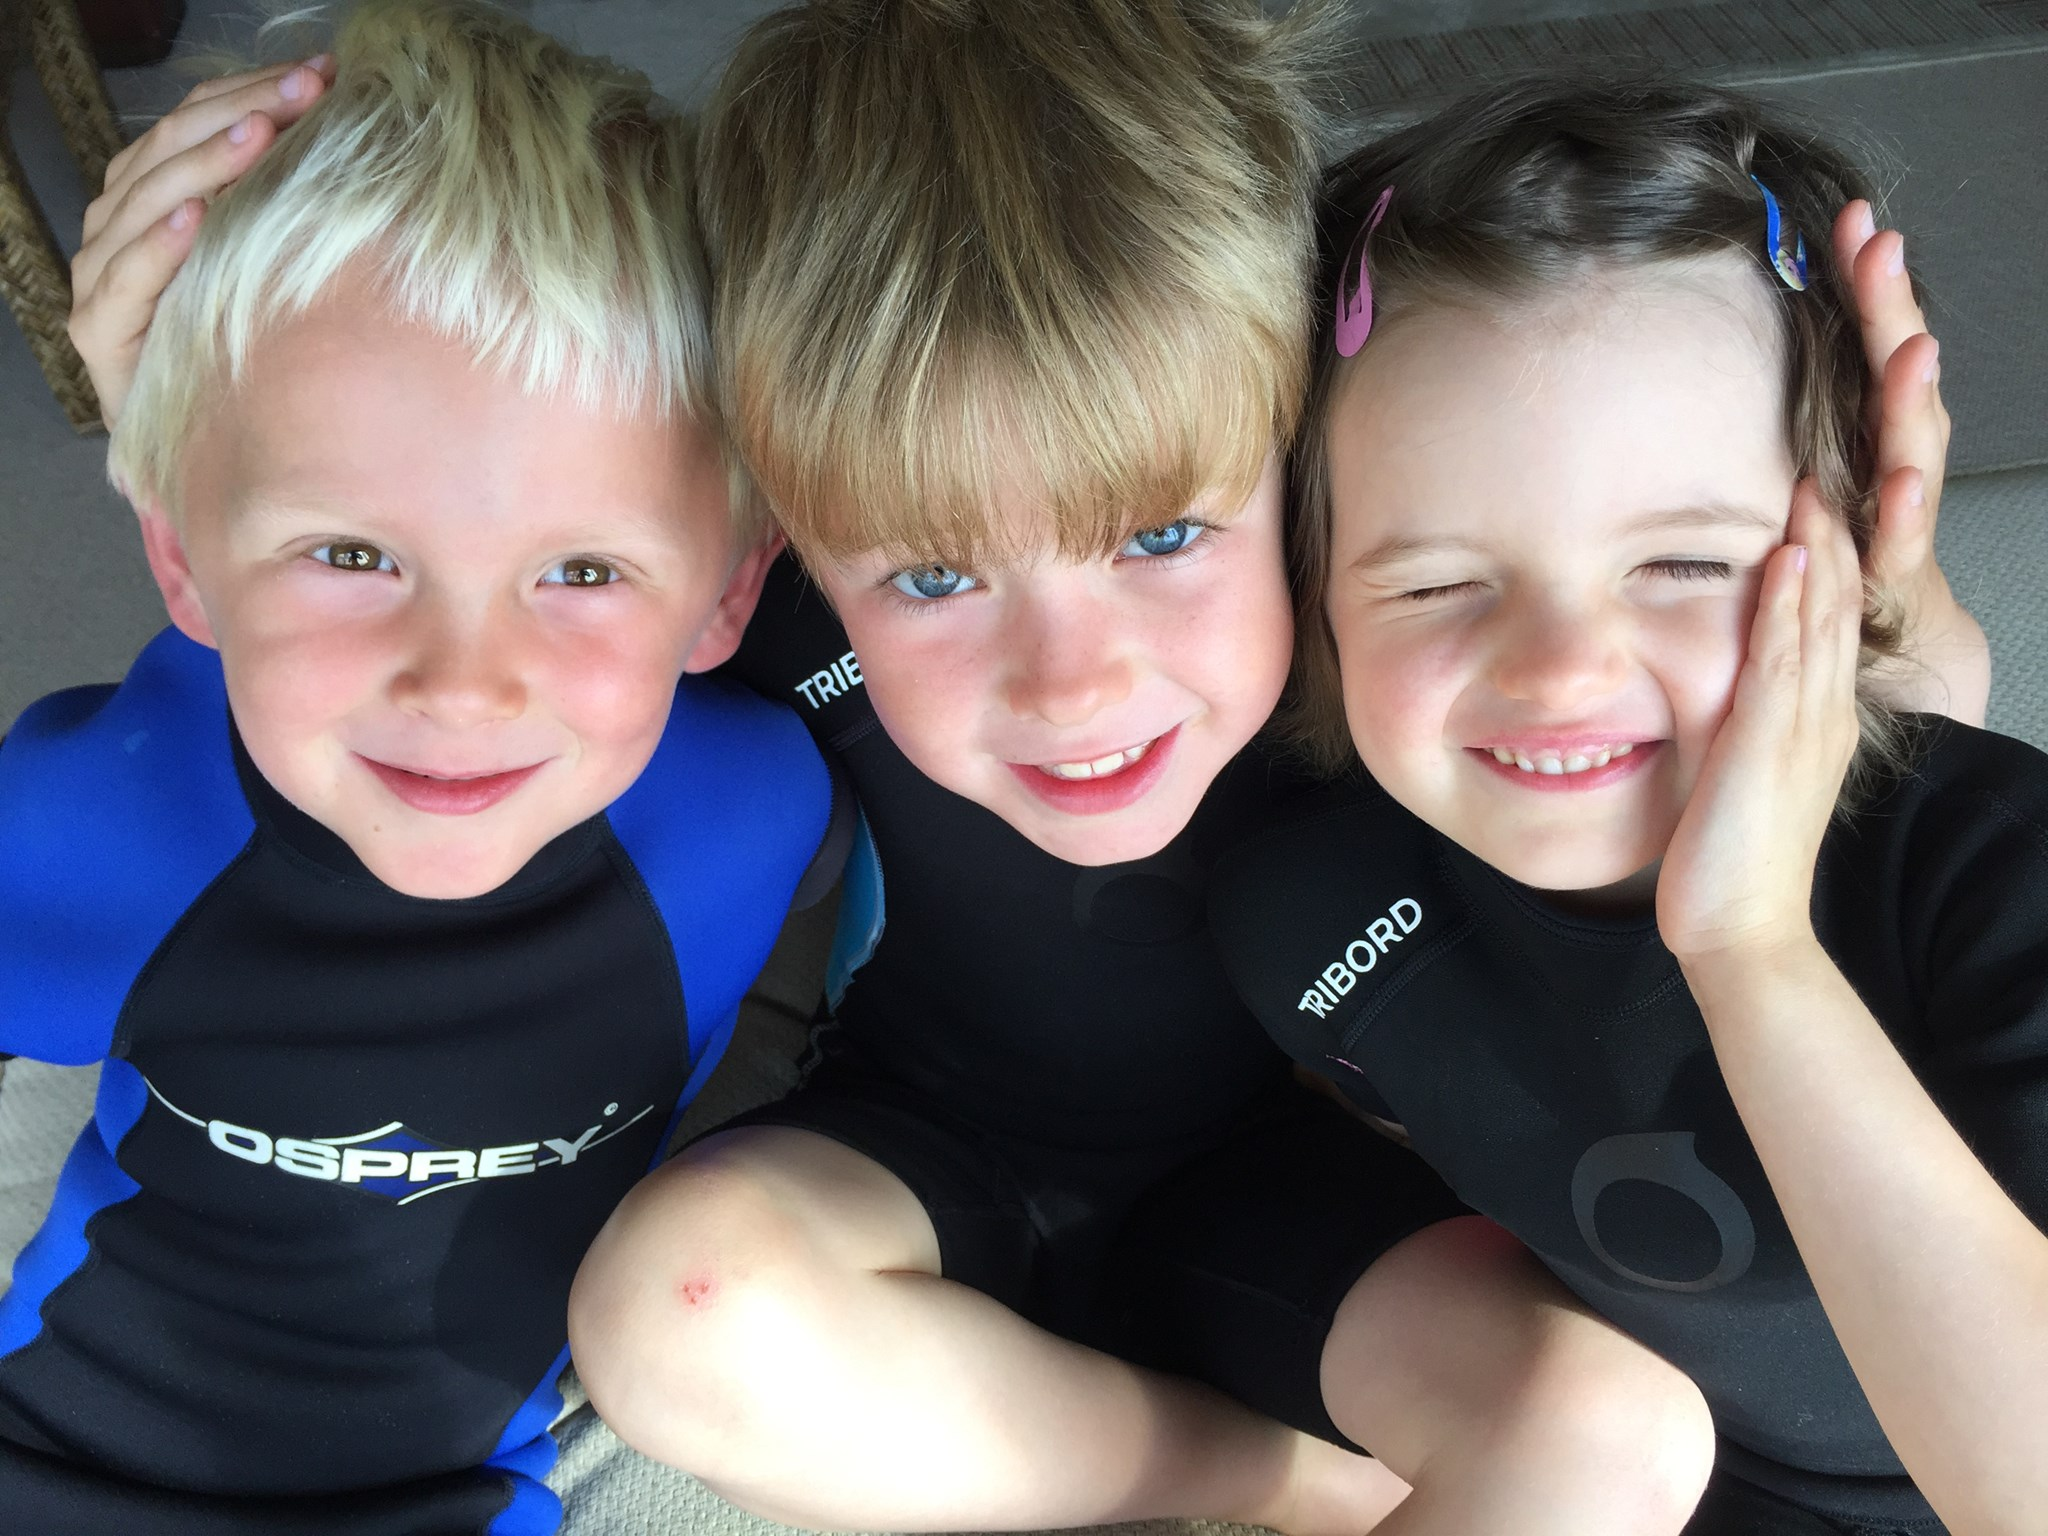 Ready for the beach - wetsuit gang!